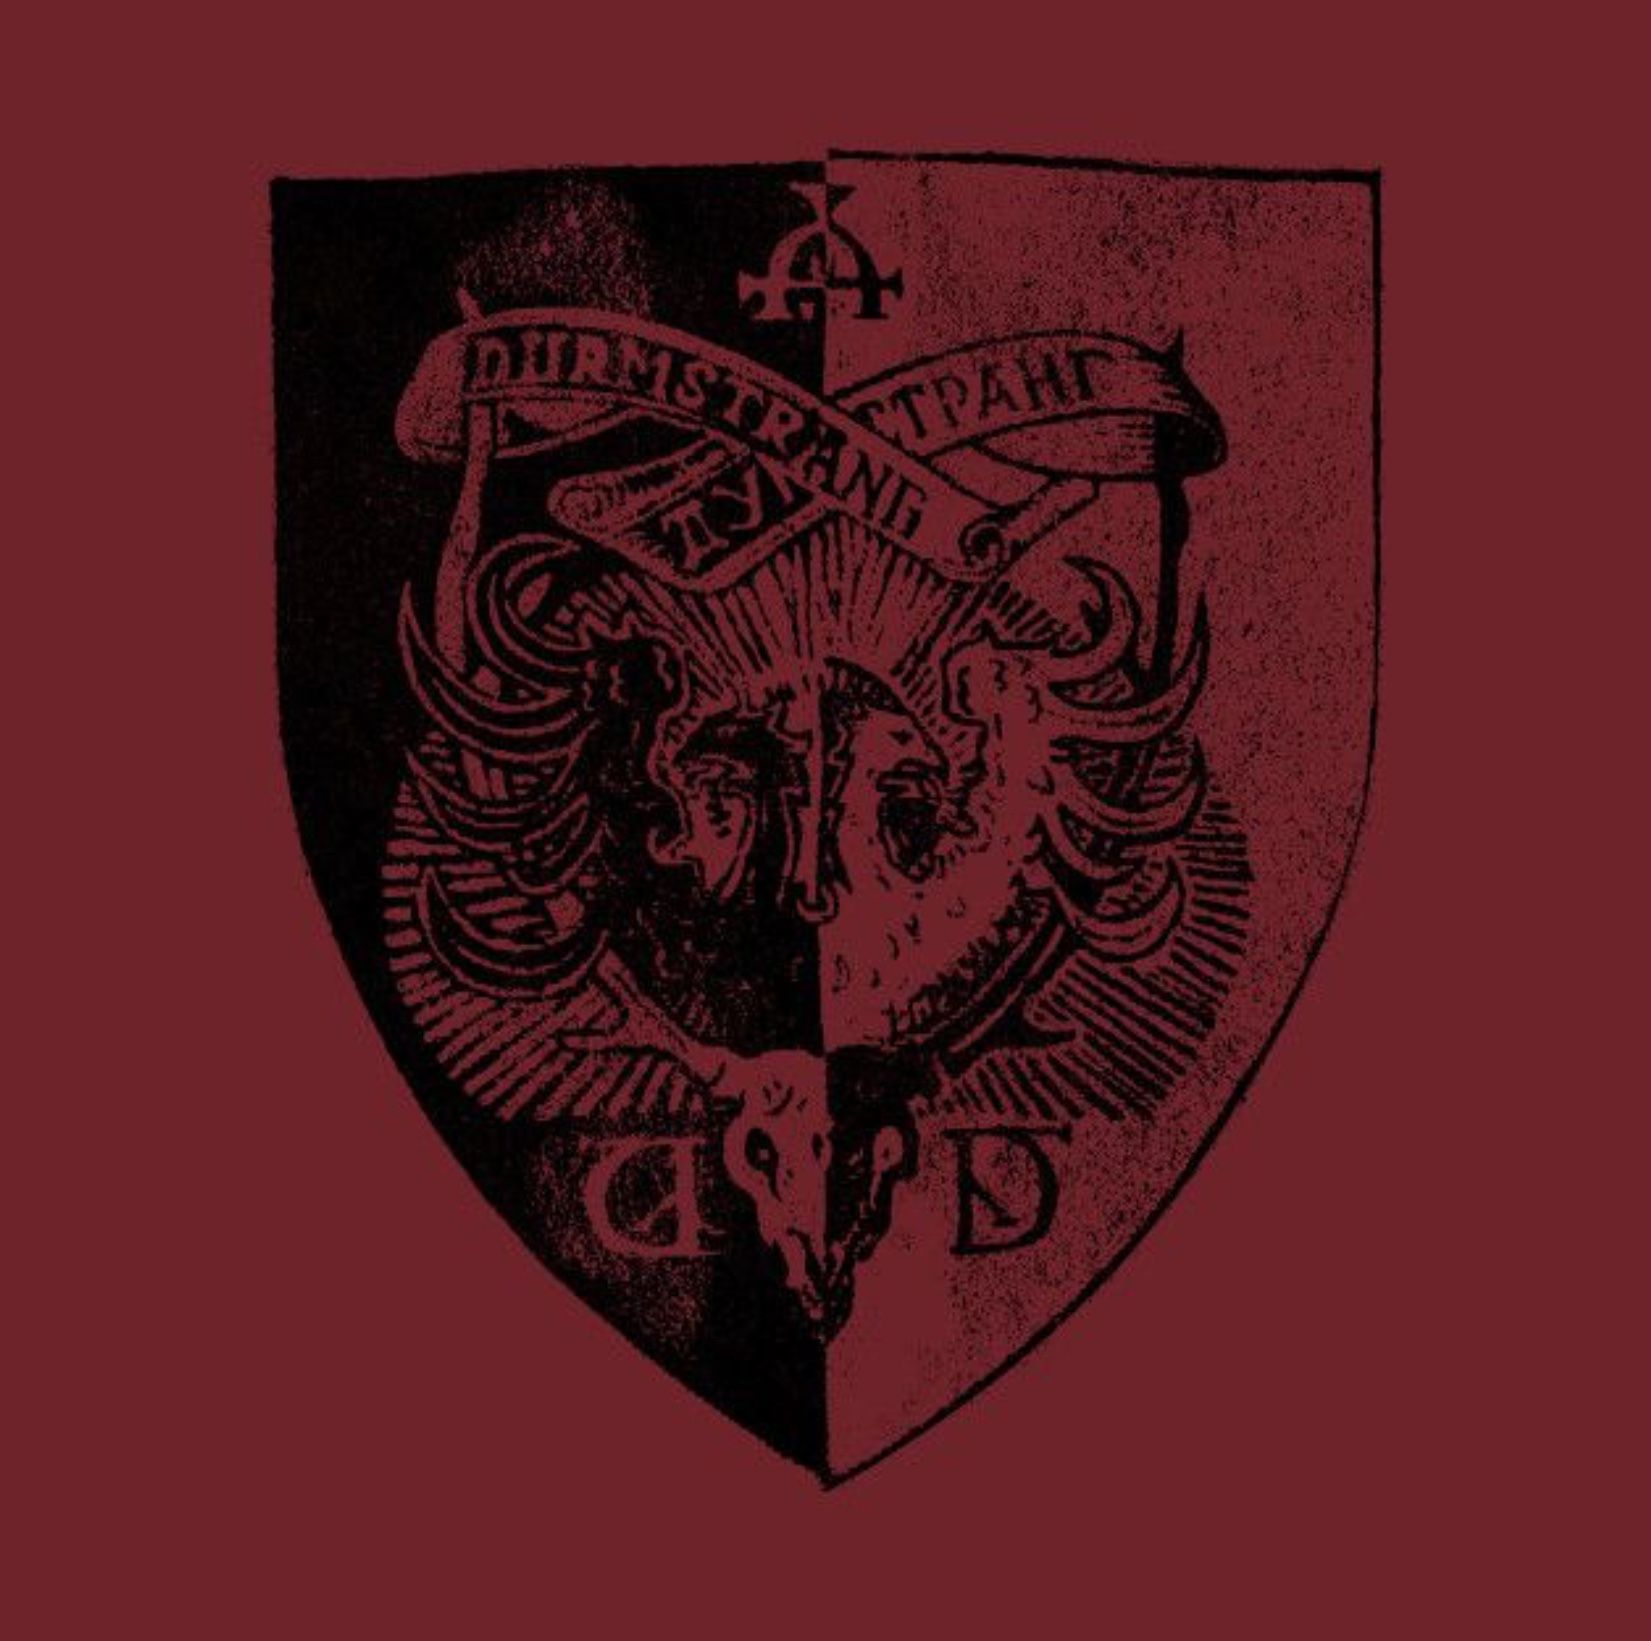 Durmstrang Harry Potter Aesthetic Harry Potter Harry Potter Quidditch What do you make sure to have? durmstrang harry potter aesthetic